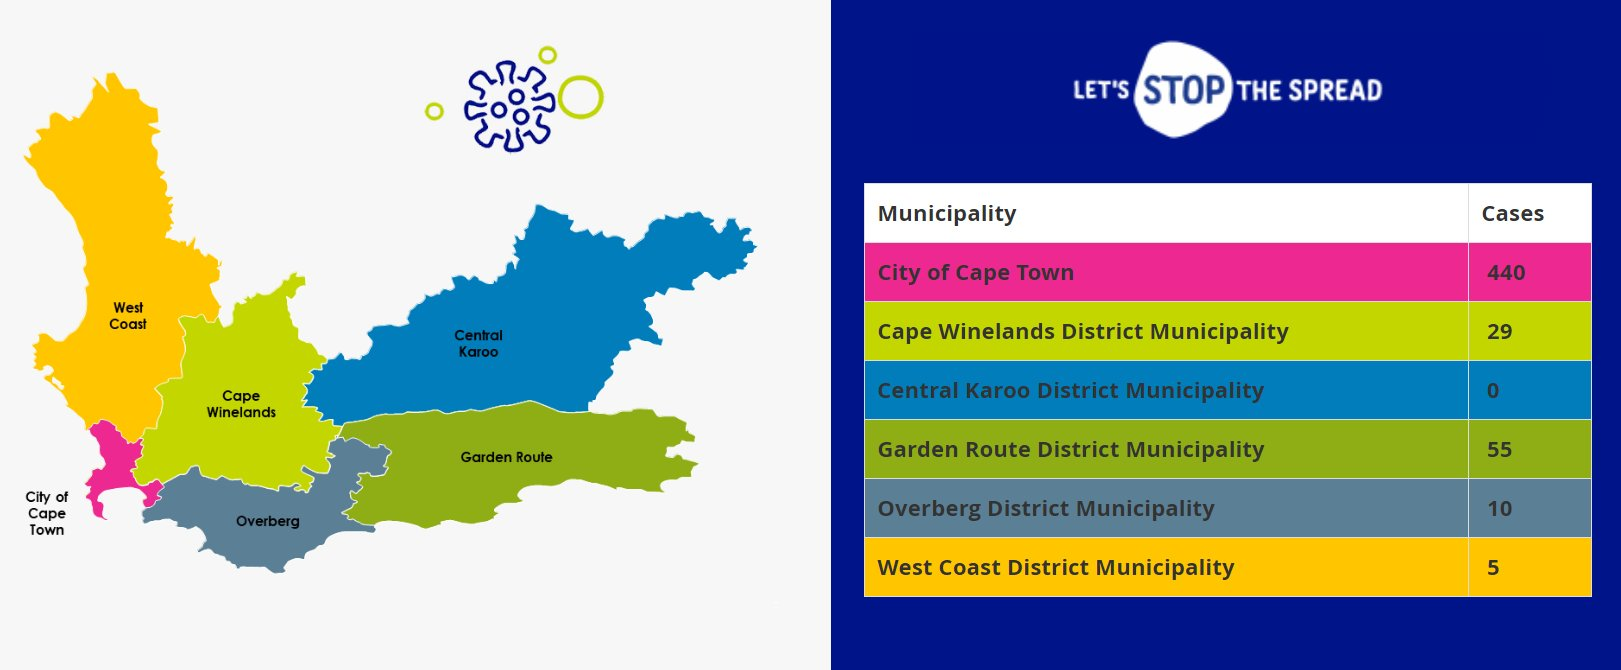 """Western Cape Gov On Twitter """"¹ Н—–𝗢𝗩𝗜𝗗 НŸðŸµ Н——𝗔𝗜𝗟𝗬 Н—¨ð—£ð——𝗔𝗧𝗘 Н—³ð—¼ð—¿ ͘ð—µð—² Н—ªð—˜ð—¦ð—§ð—˜ð—¥ð—¡ Н—–𝗔𝗣𝗘 As At 00h01 On 10 April 2020 The Western Cape Had 545 Recorded Covid 19 Infections For Detailed Info"""